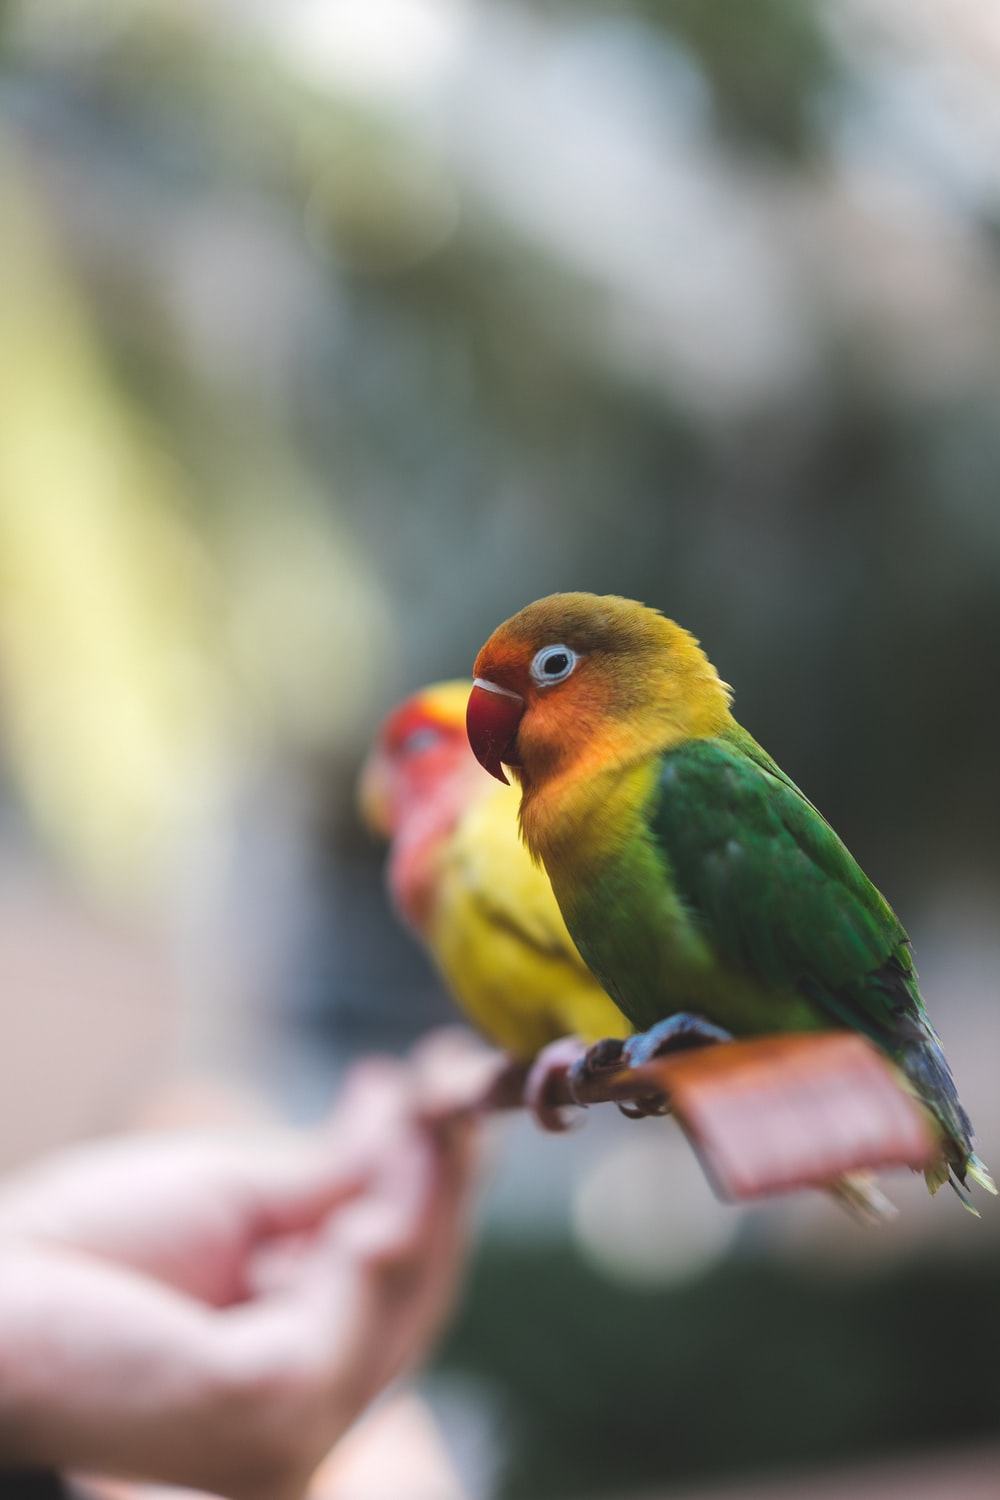 green yellow and red bird on persons hand